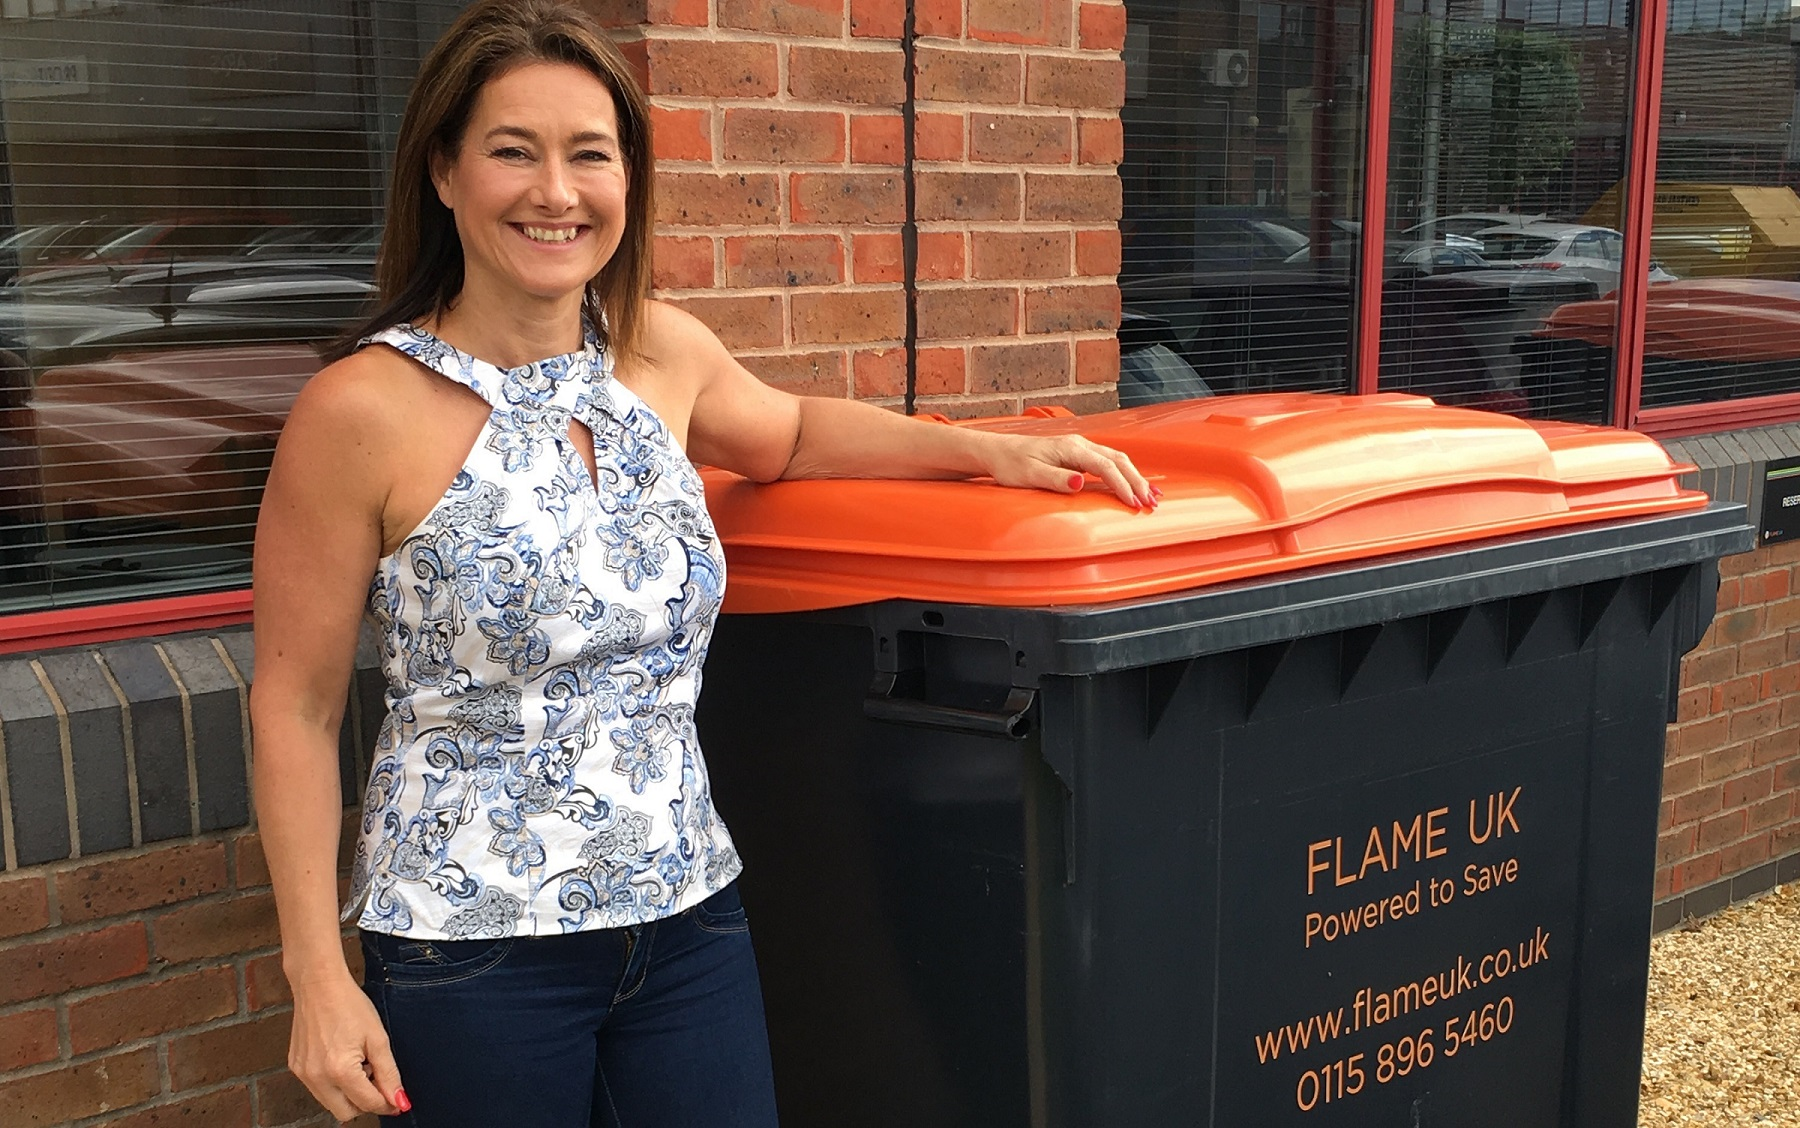 A meeting with a waste professional…Pam Knight of Flame UK